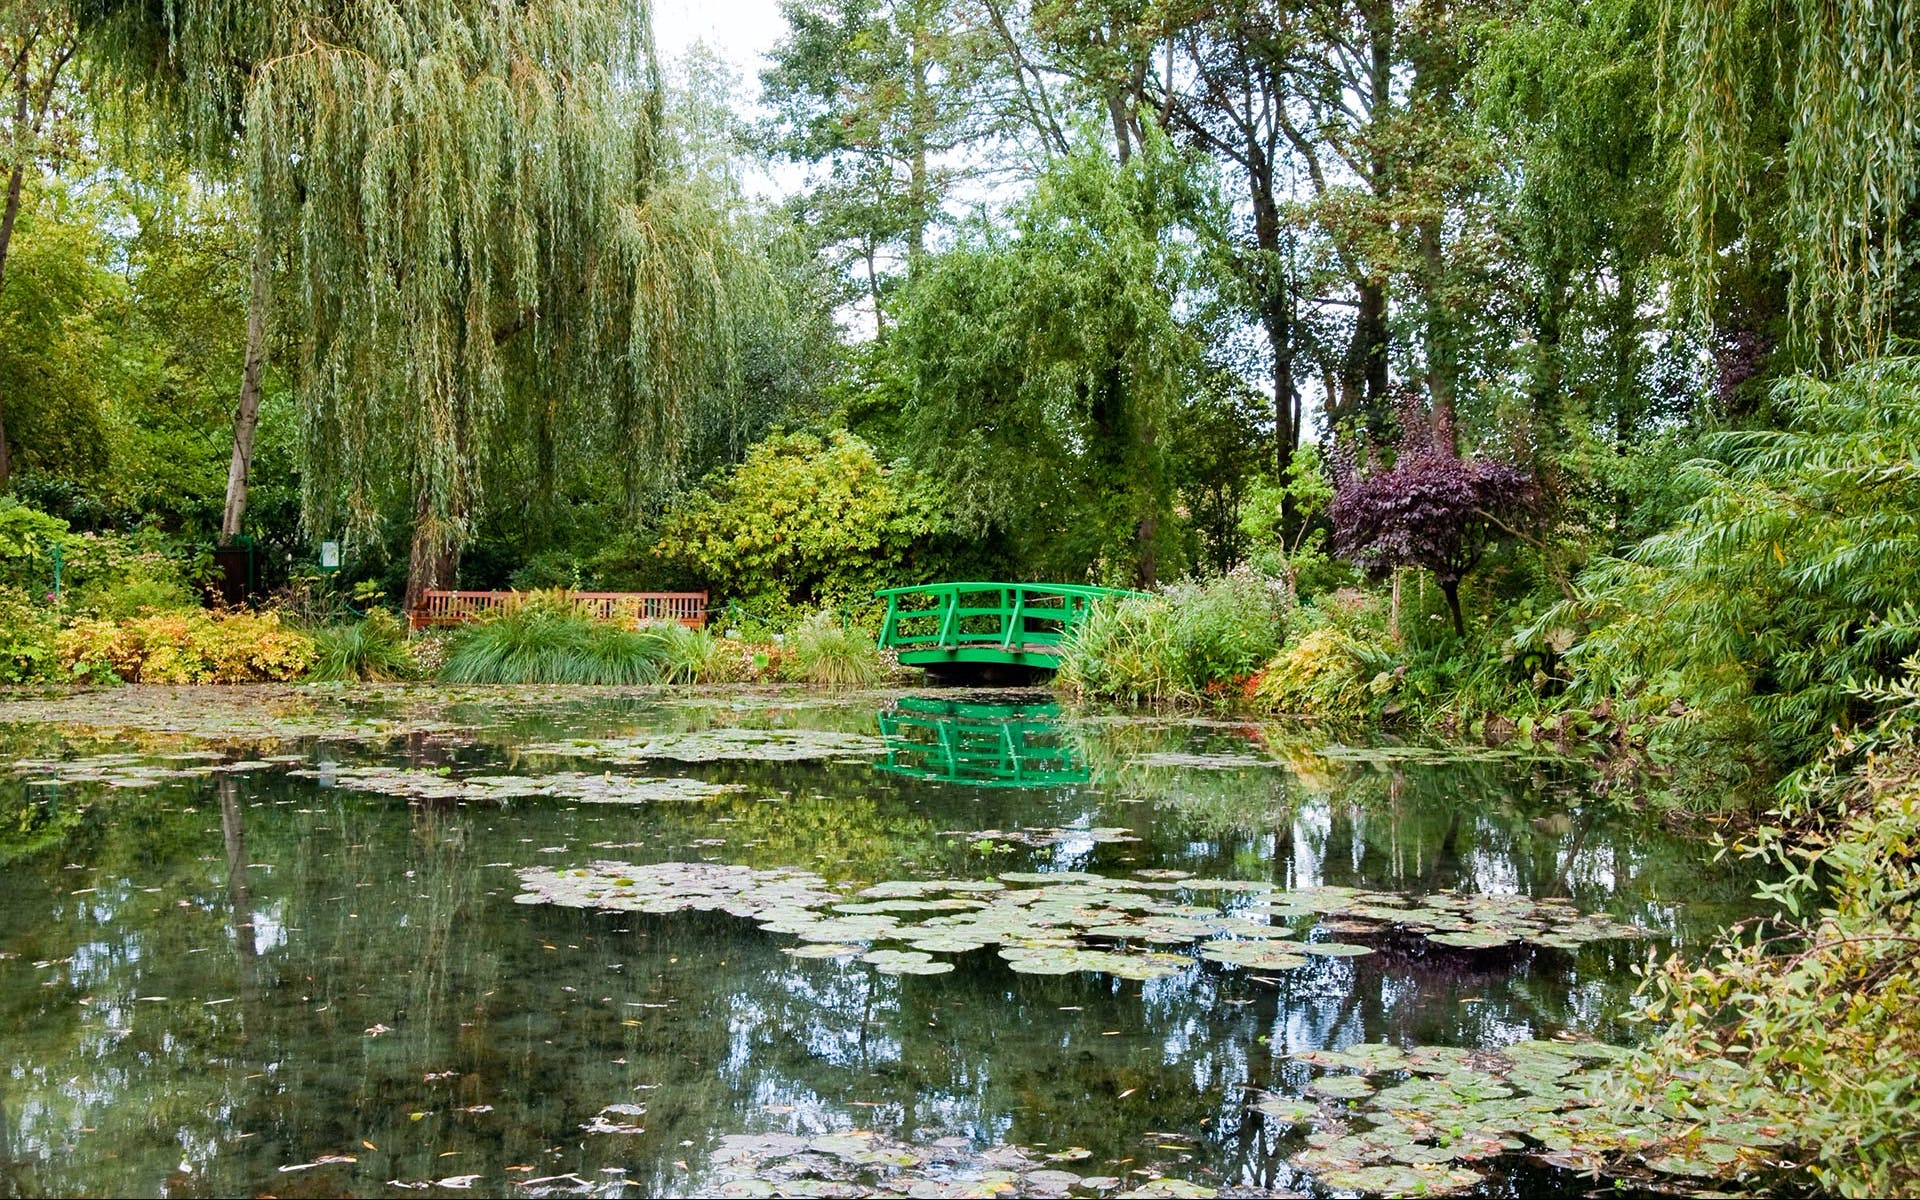 giverny, monet's garden & versailles palace full day trip from paris-1